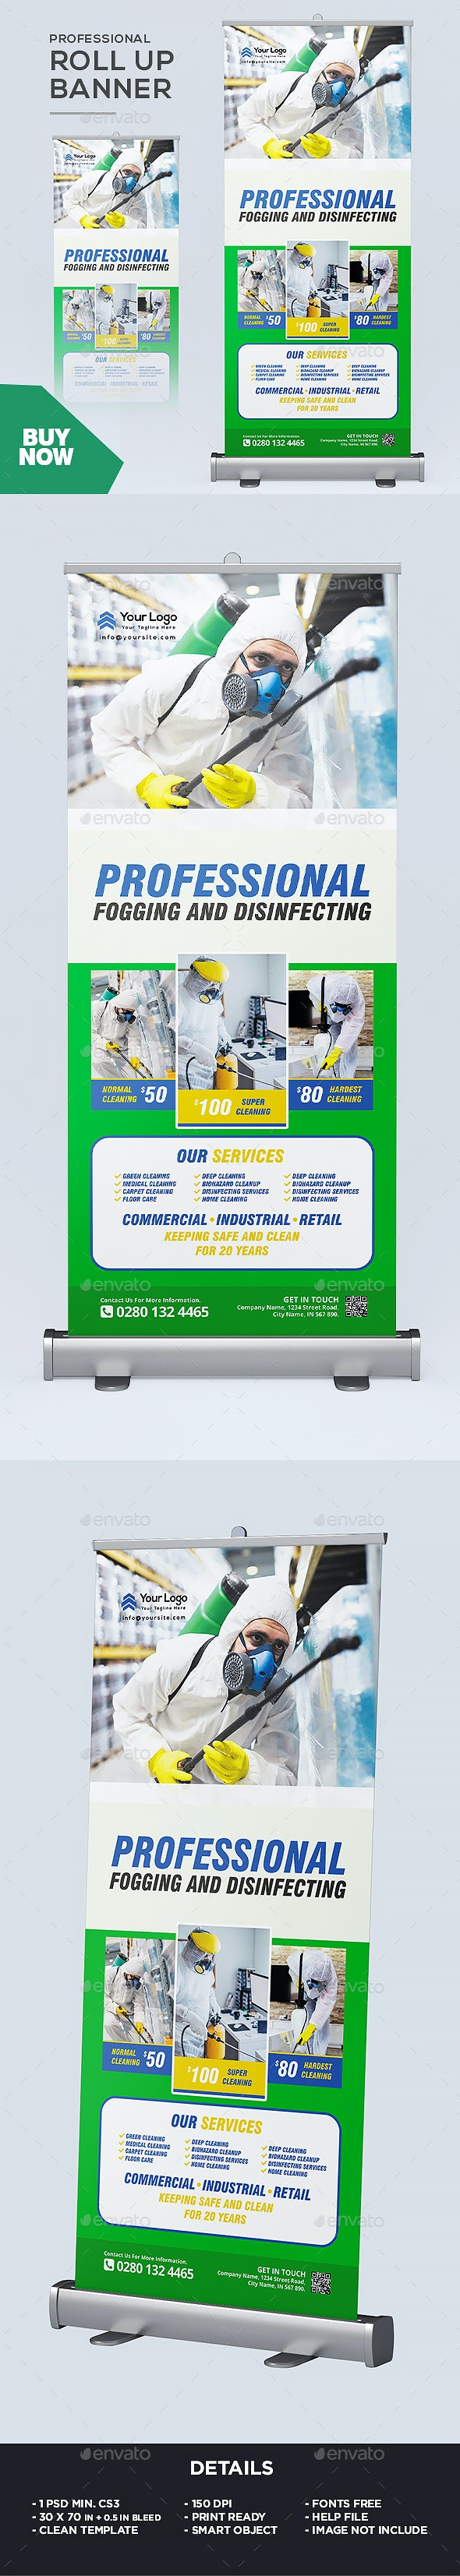 Professional Disinfecting Services Roll up Banner - Signage Print Templates